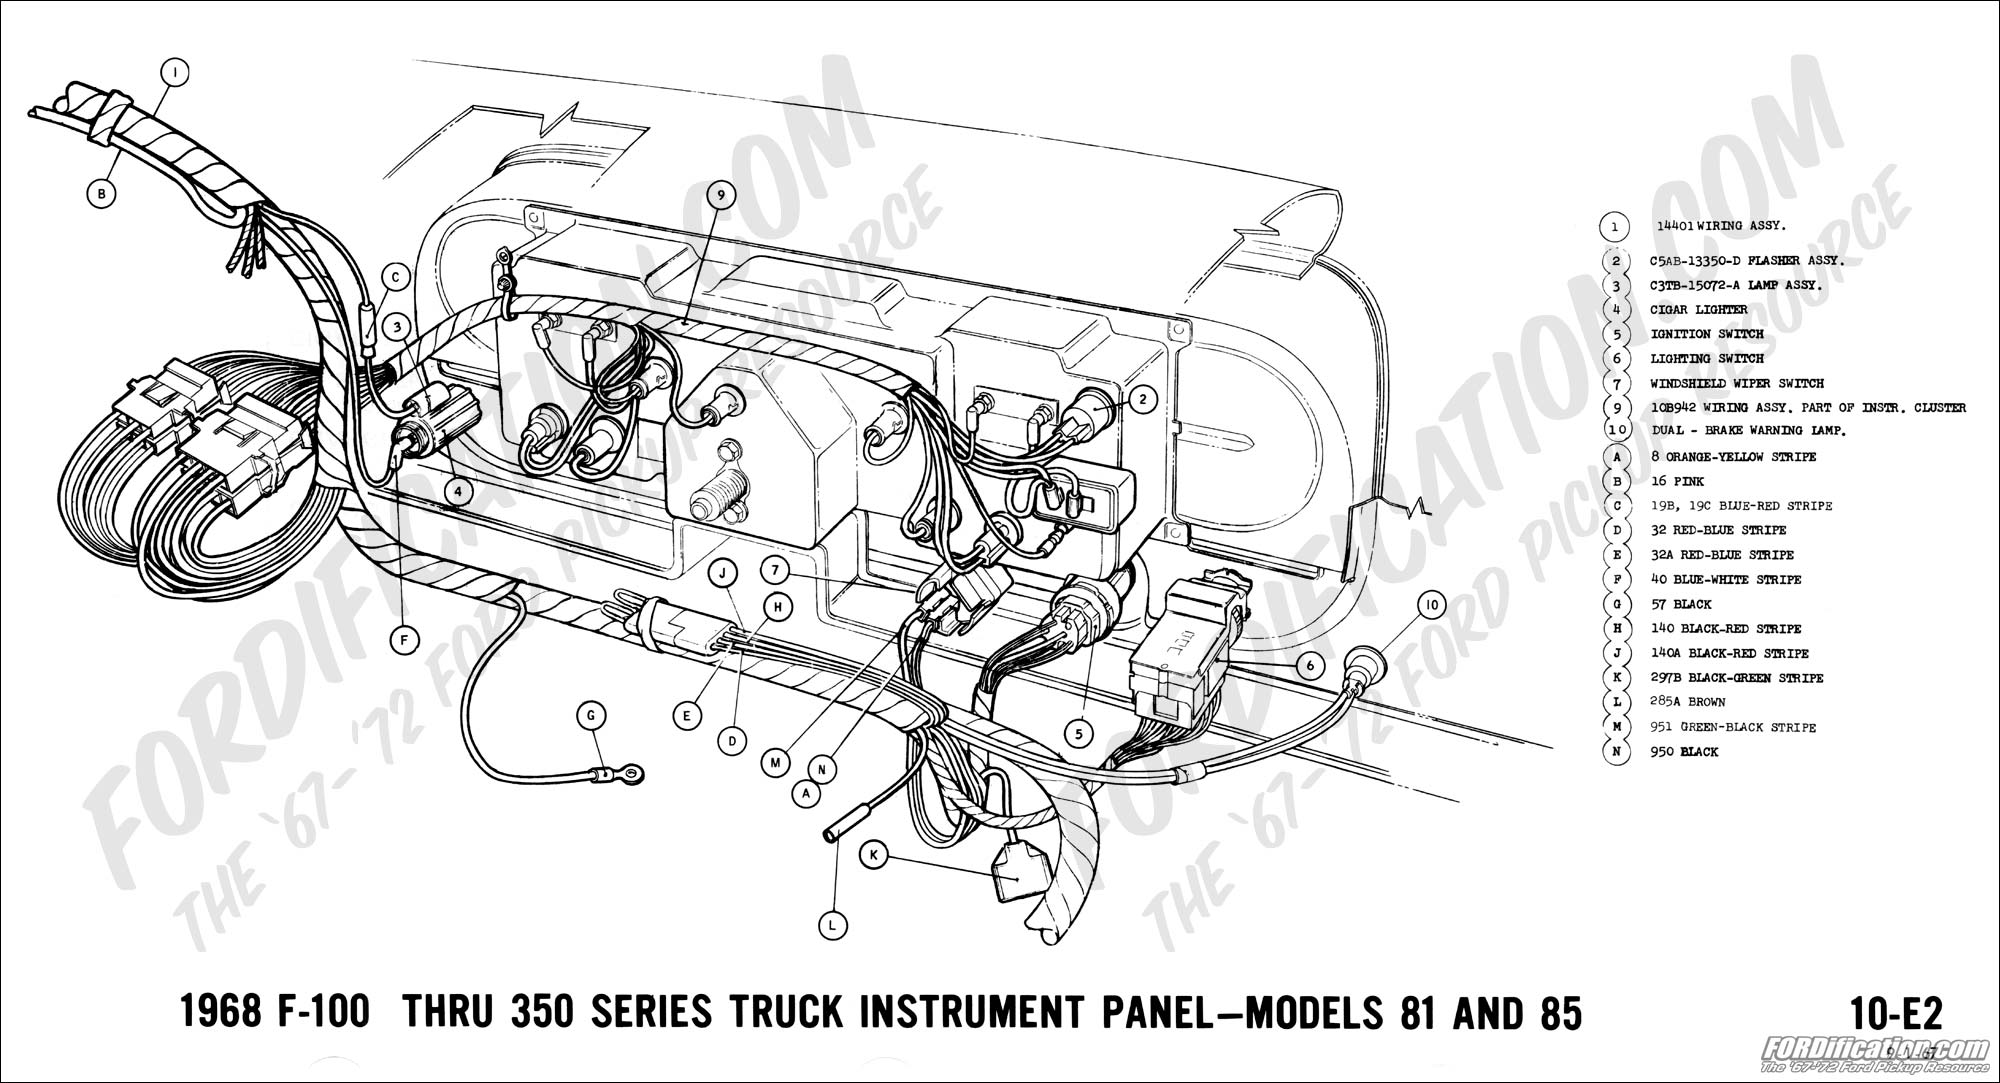 Ford Truck Technical Drawings And Schematics Section H Wiring 87 Chevy 350 Alternator Diagram Free Download Manual Diagrams Legend 1968 F 100 Thru Instrument Panel